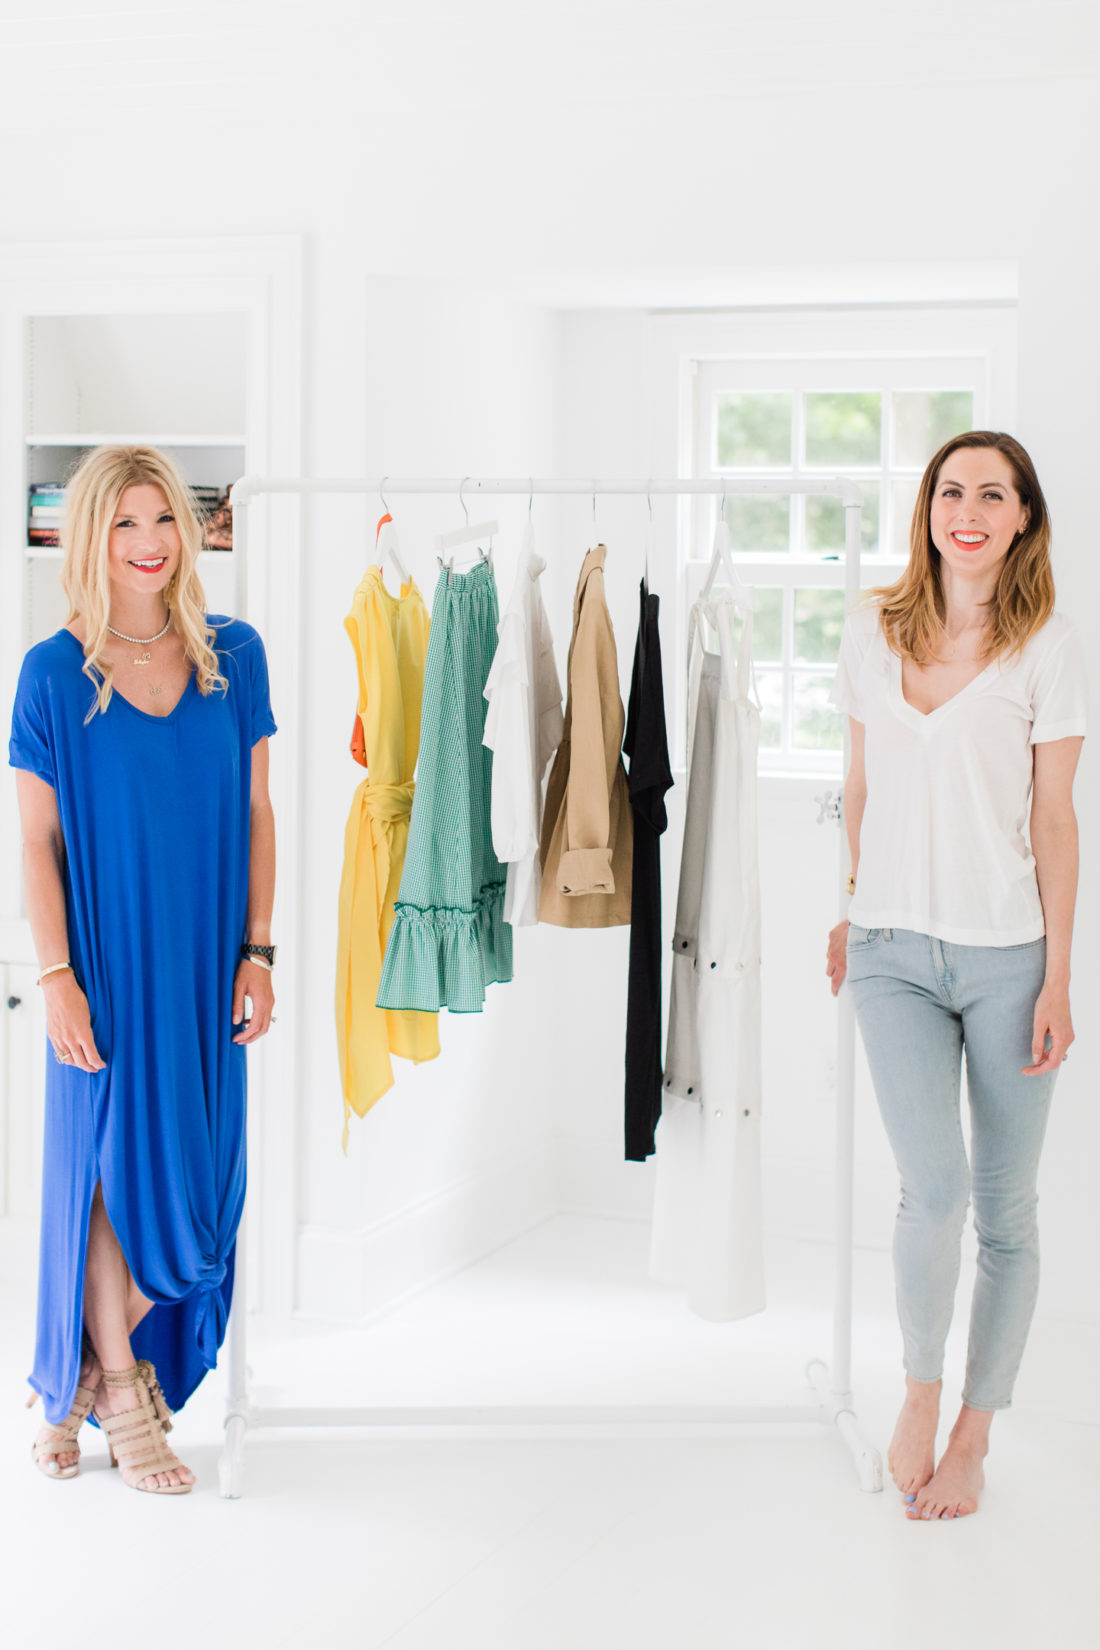 Eva Amurri Martino and Morgan Hutchinson display how to pack for a vacation with only six pieces of clothing